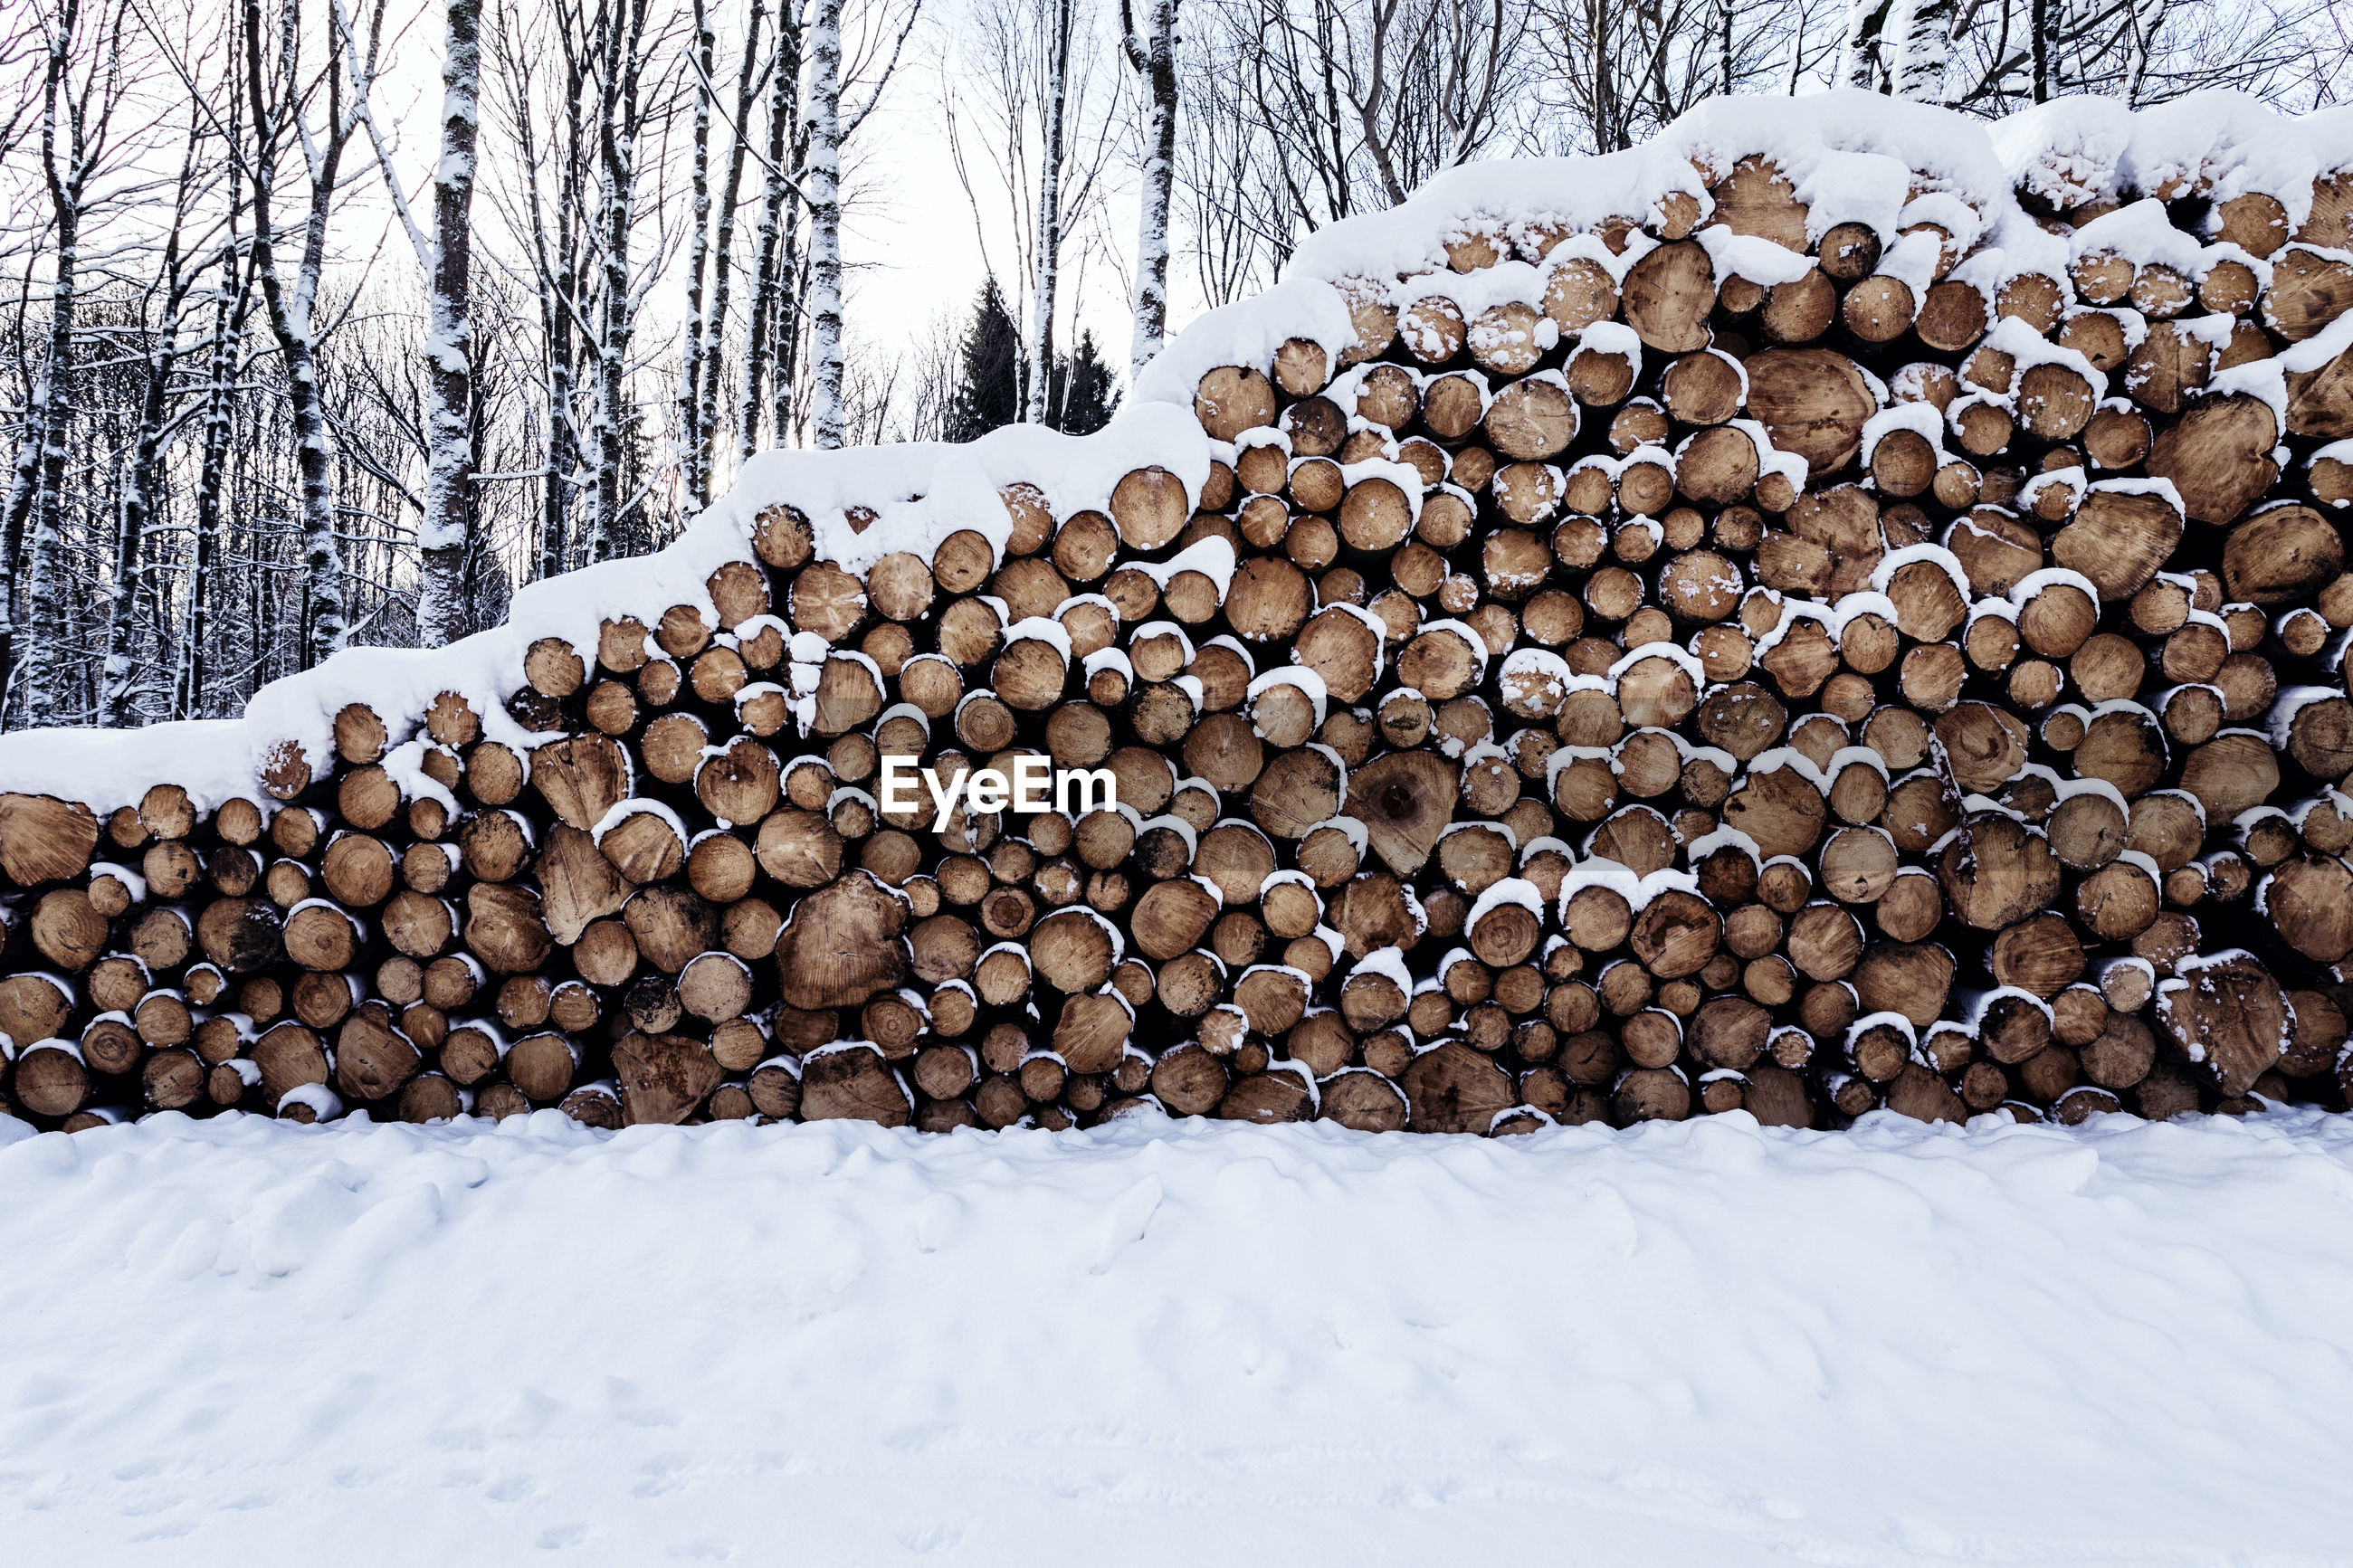 STACK OF FIREWOOD ON SNOW